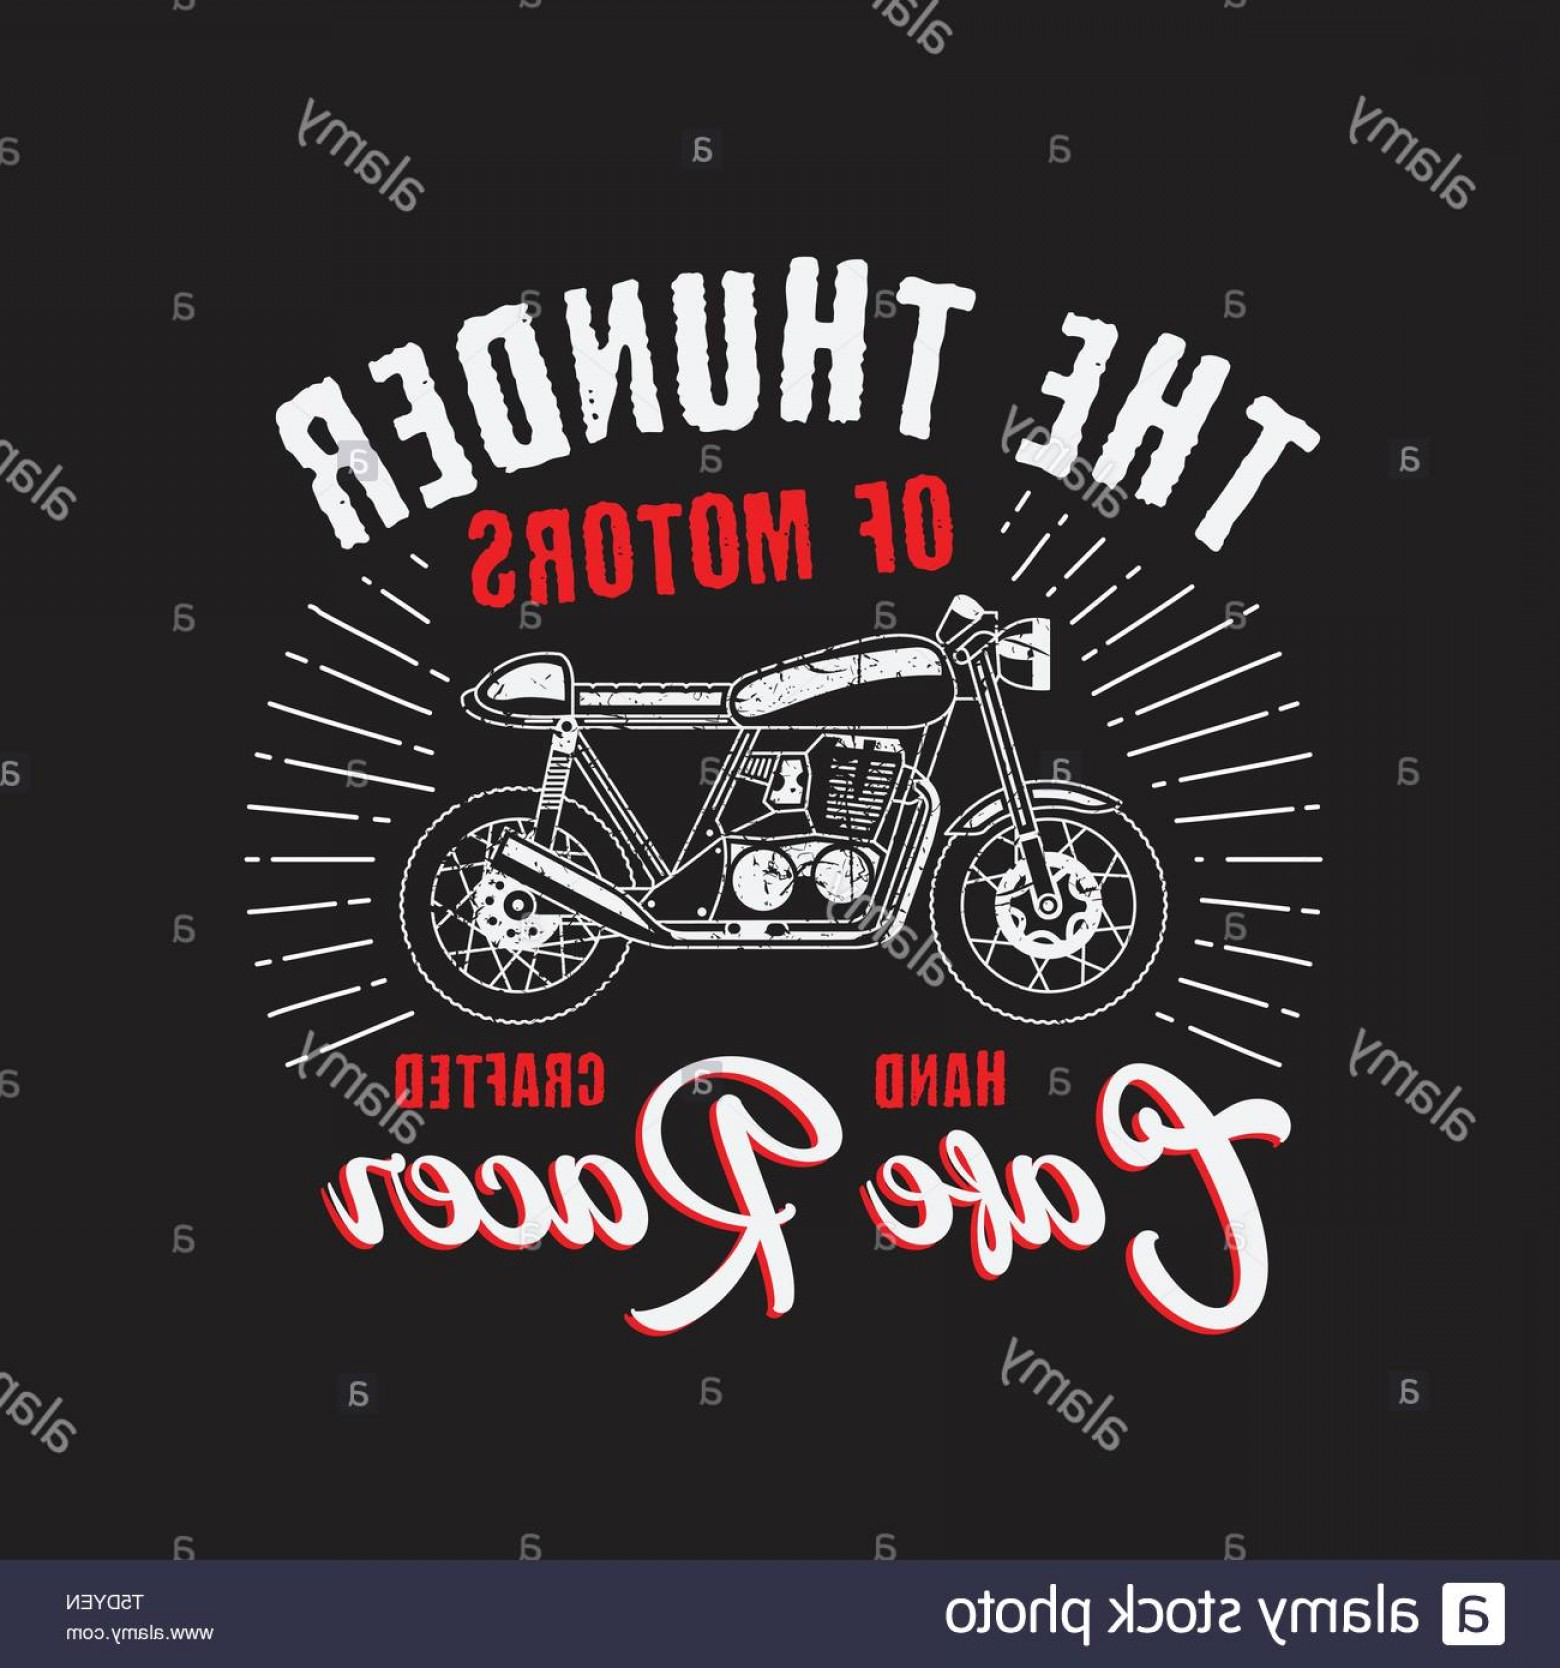 Motorcycle Club Vector: The Thunder Motorcycle Club Vector Template Good For Your T Shirt Event Image